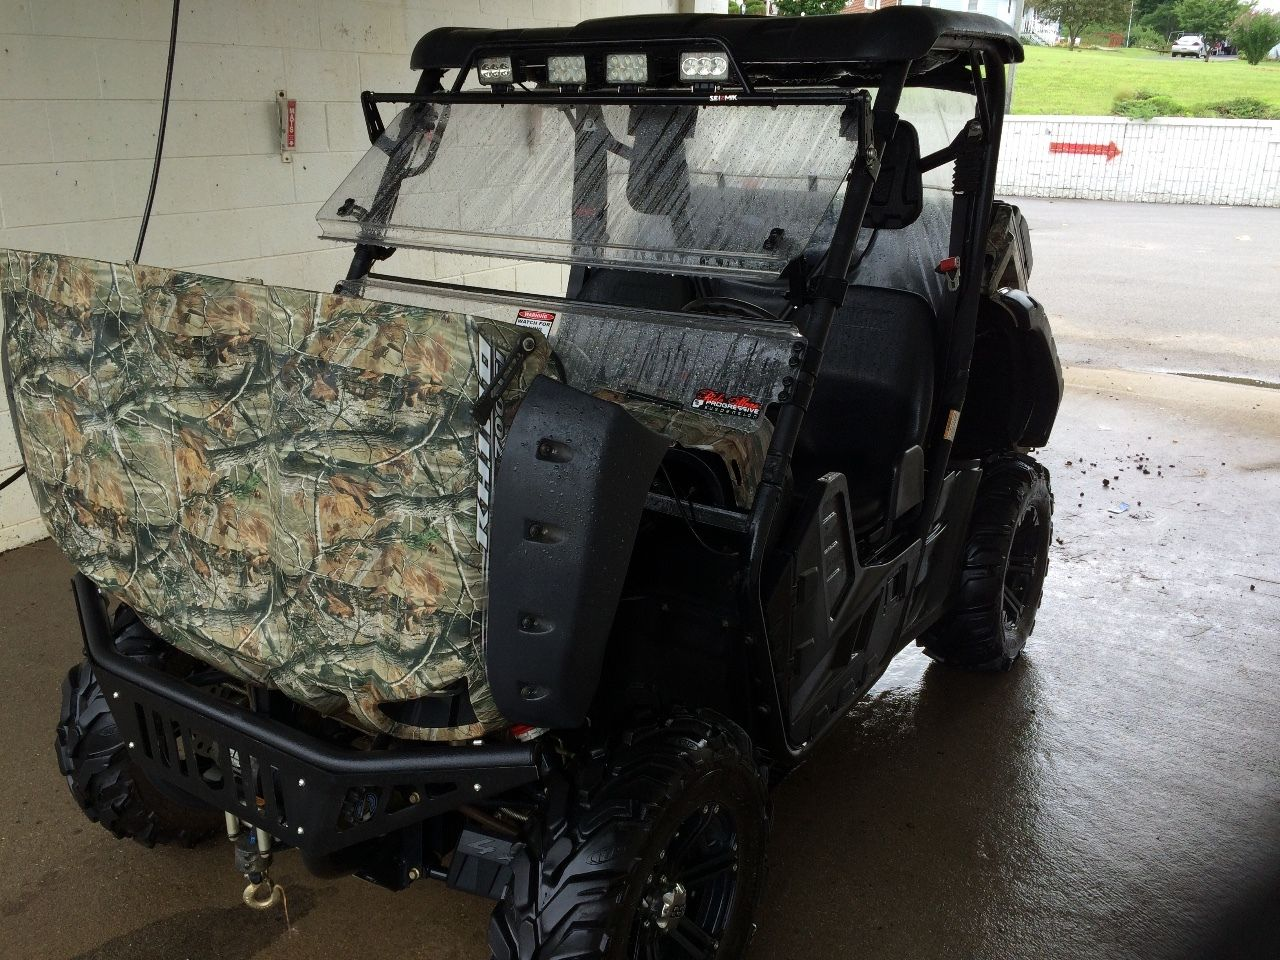 Used 2012 yamaha rhino 700 fi auto 4x4 atvs for sale in west 4x4 atvs for sale in west virginia 2012 yamah rhino 700 excellent condition very dependable many extras including roof lightbar windshields toolbox mozeypictures Choice Image